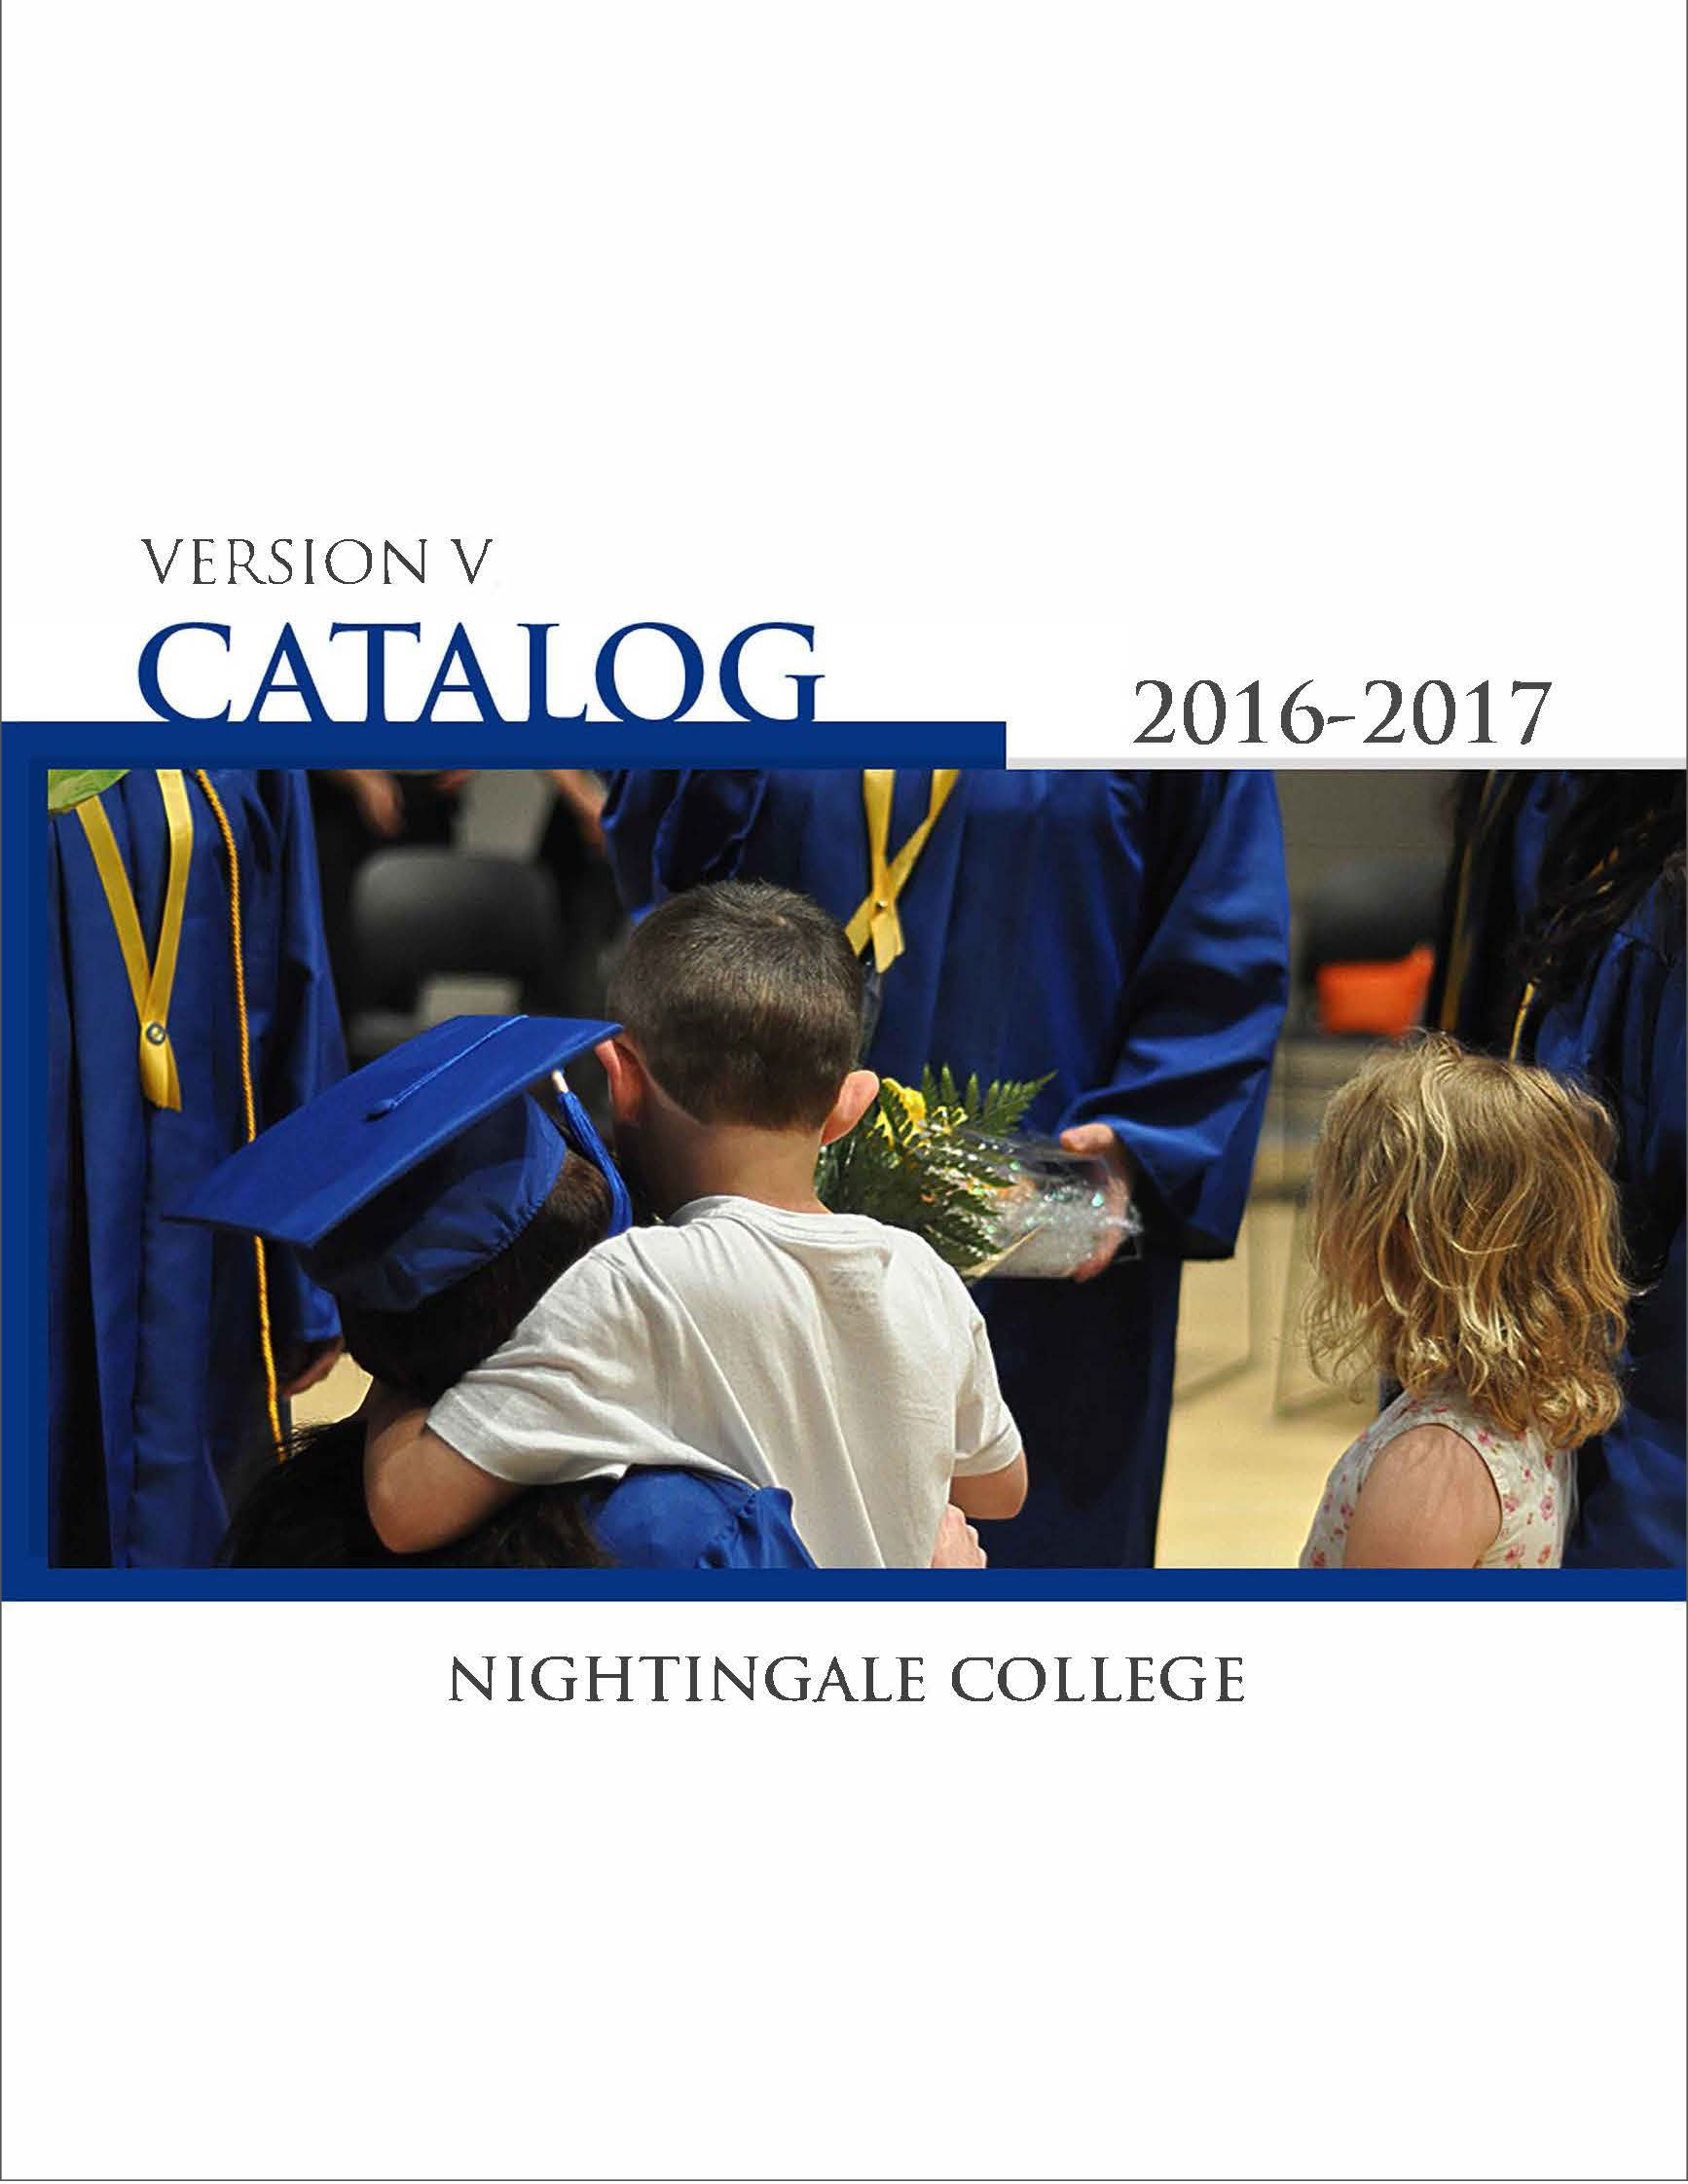 College Catalog Front Cover 2014_2015